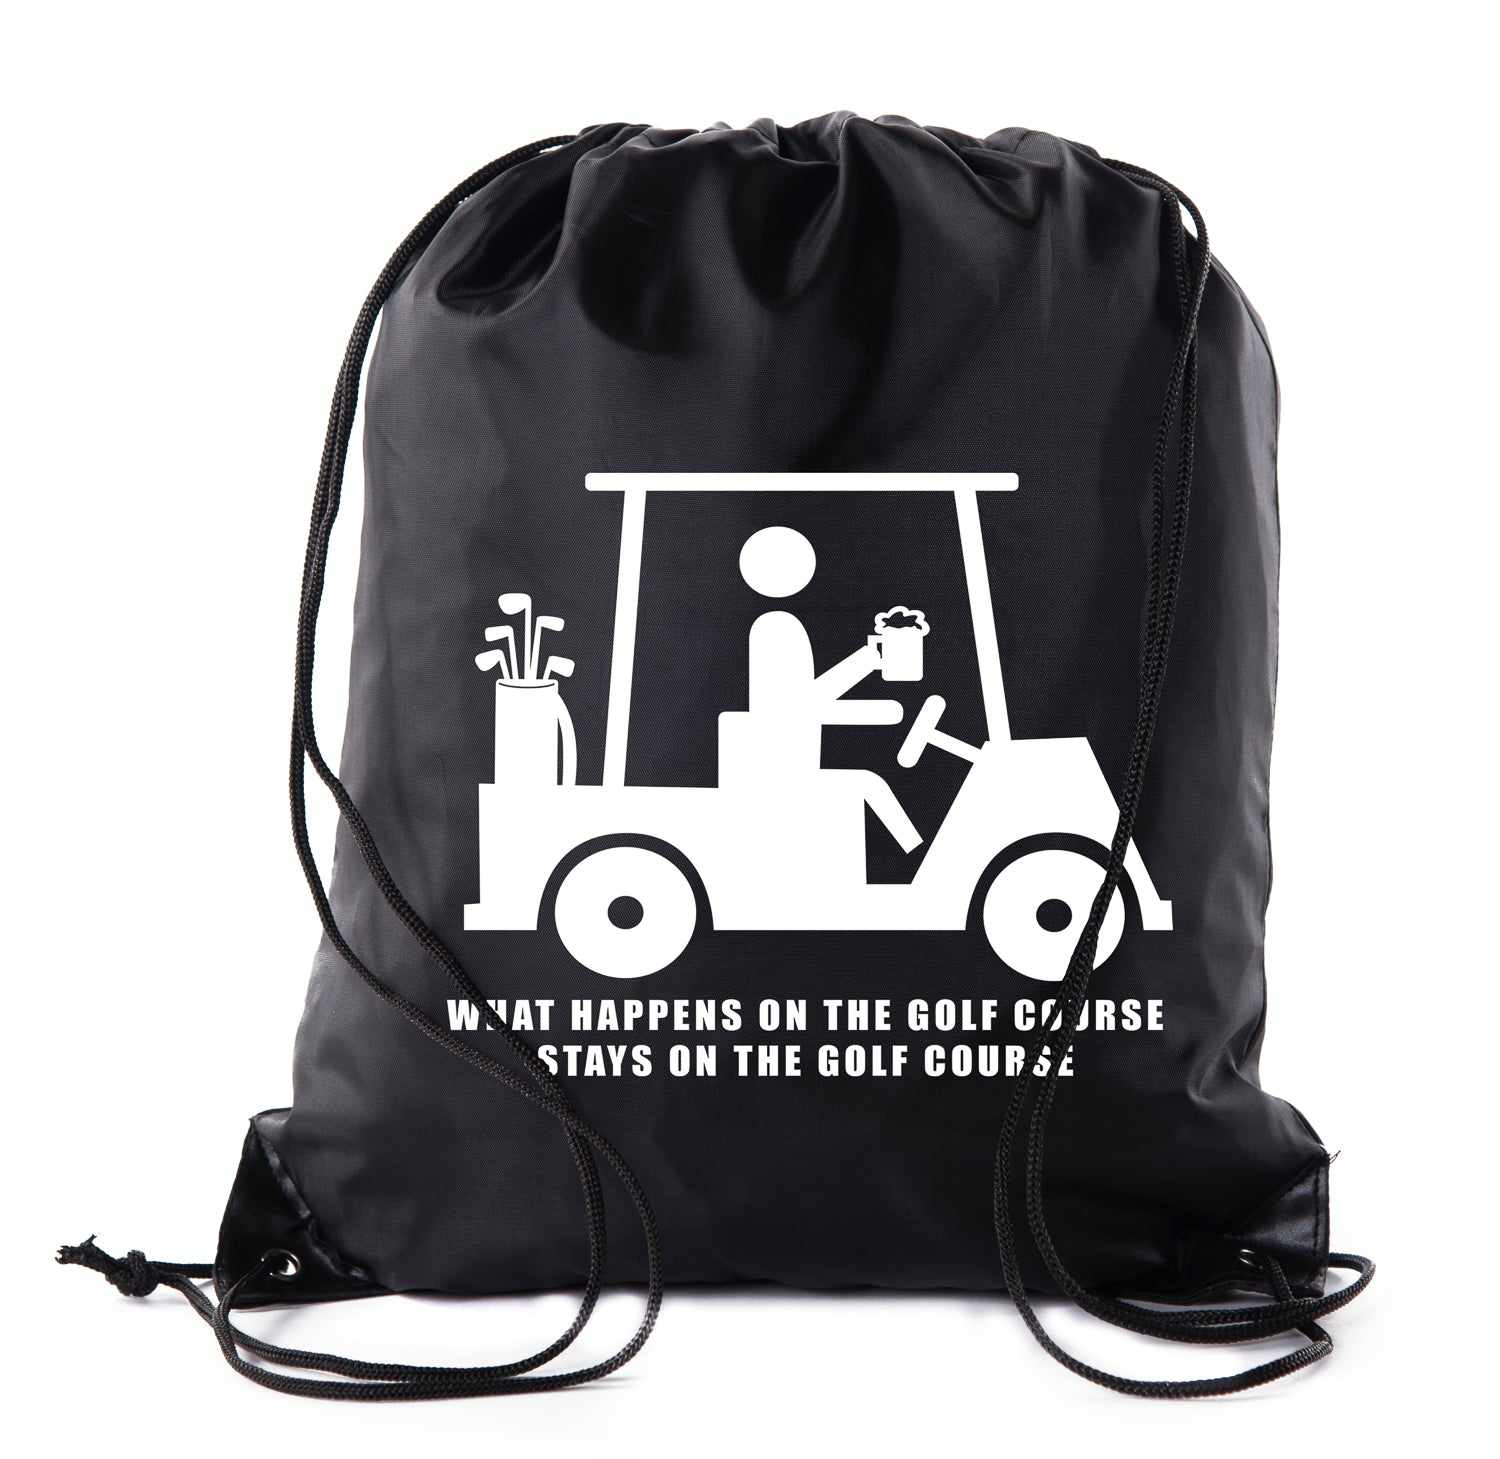 Accessory - Mato & Hash Golf Bags, Drawstring Golf Bags For Leagues, Parties And More! - Stays On Course